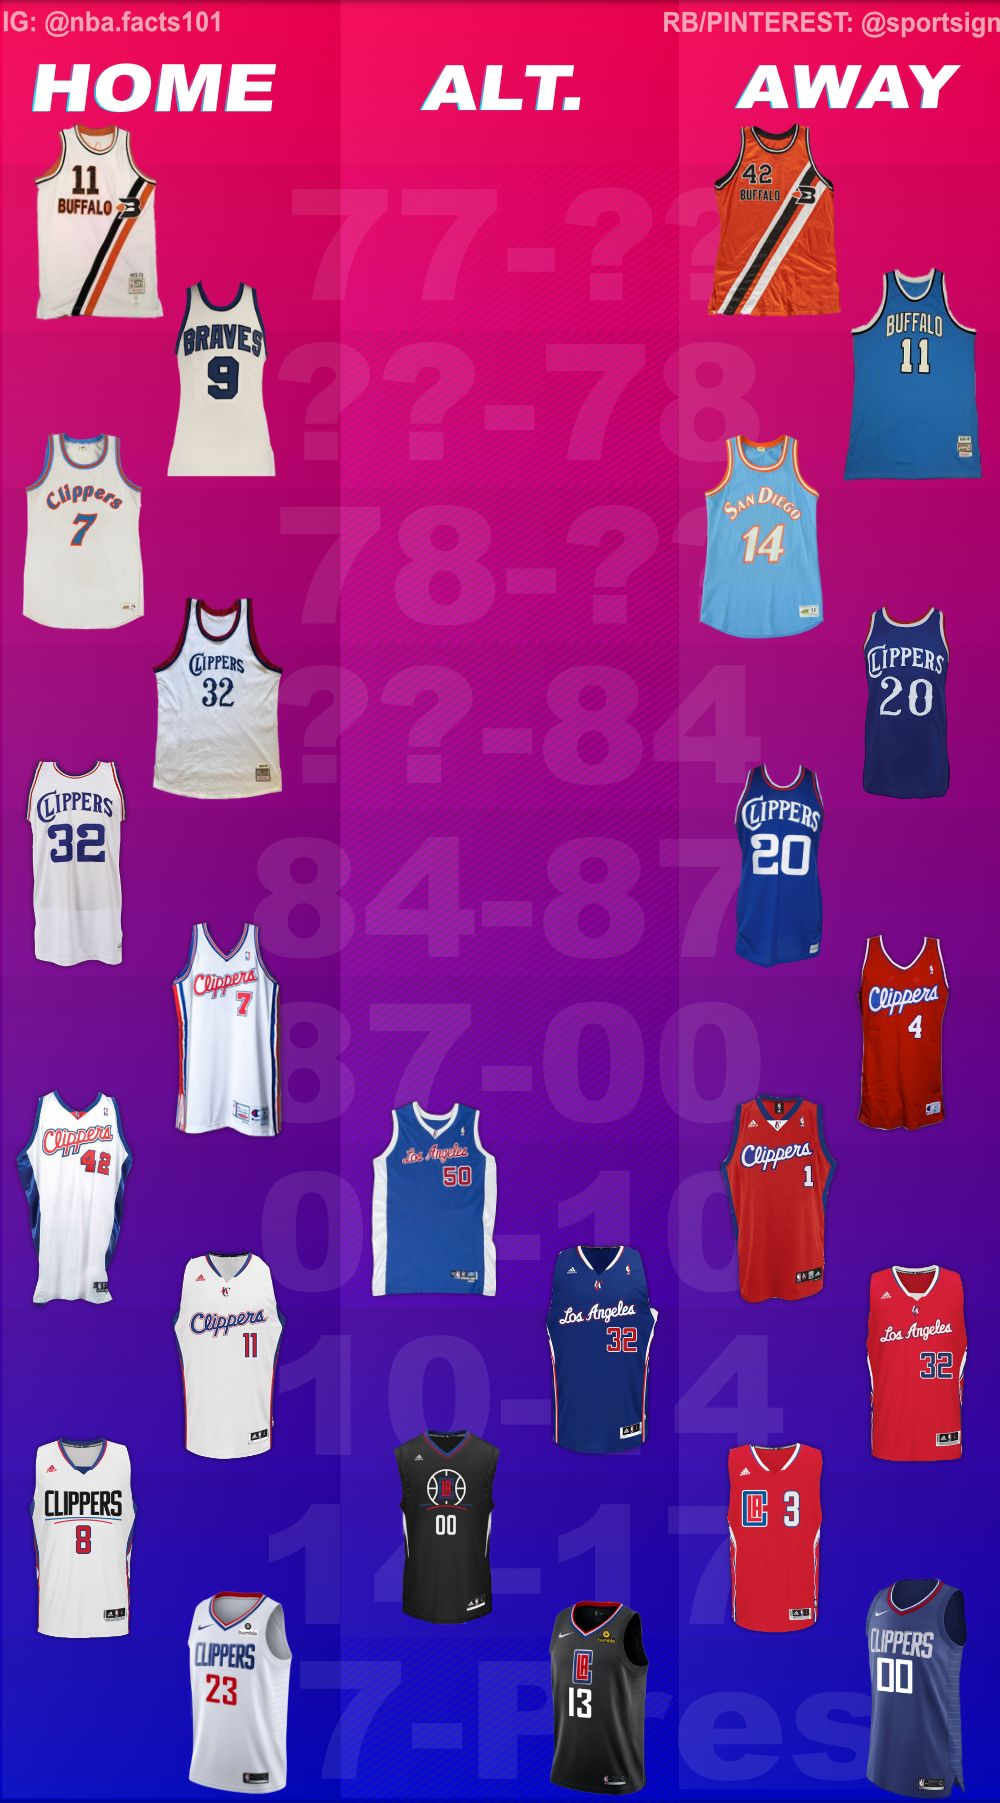 Los Angeles Clippers Jersey History Nba Nba Basketball Teams Los Angeles Clippers